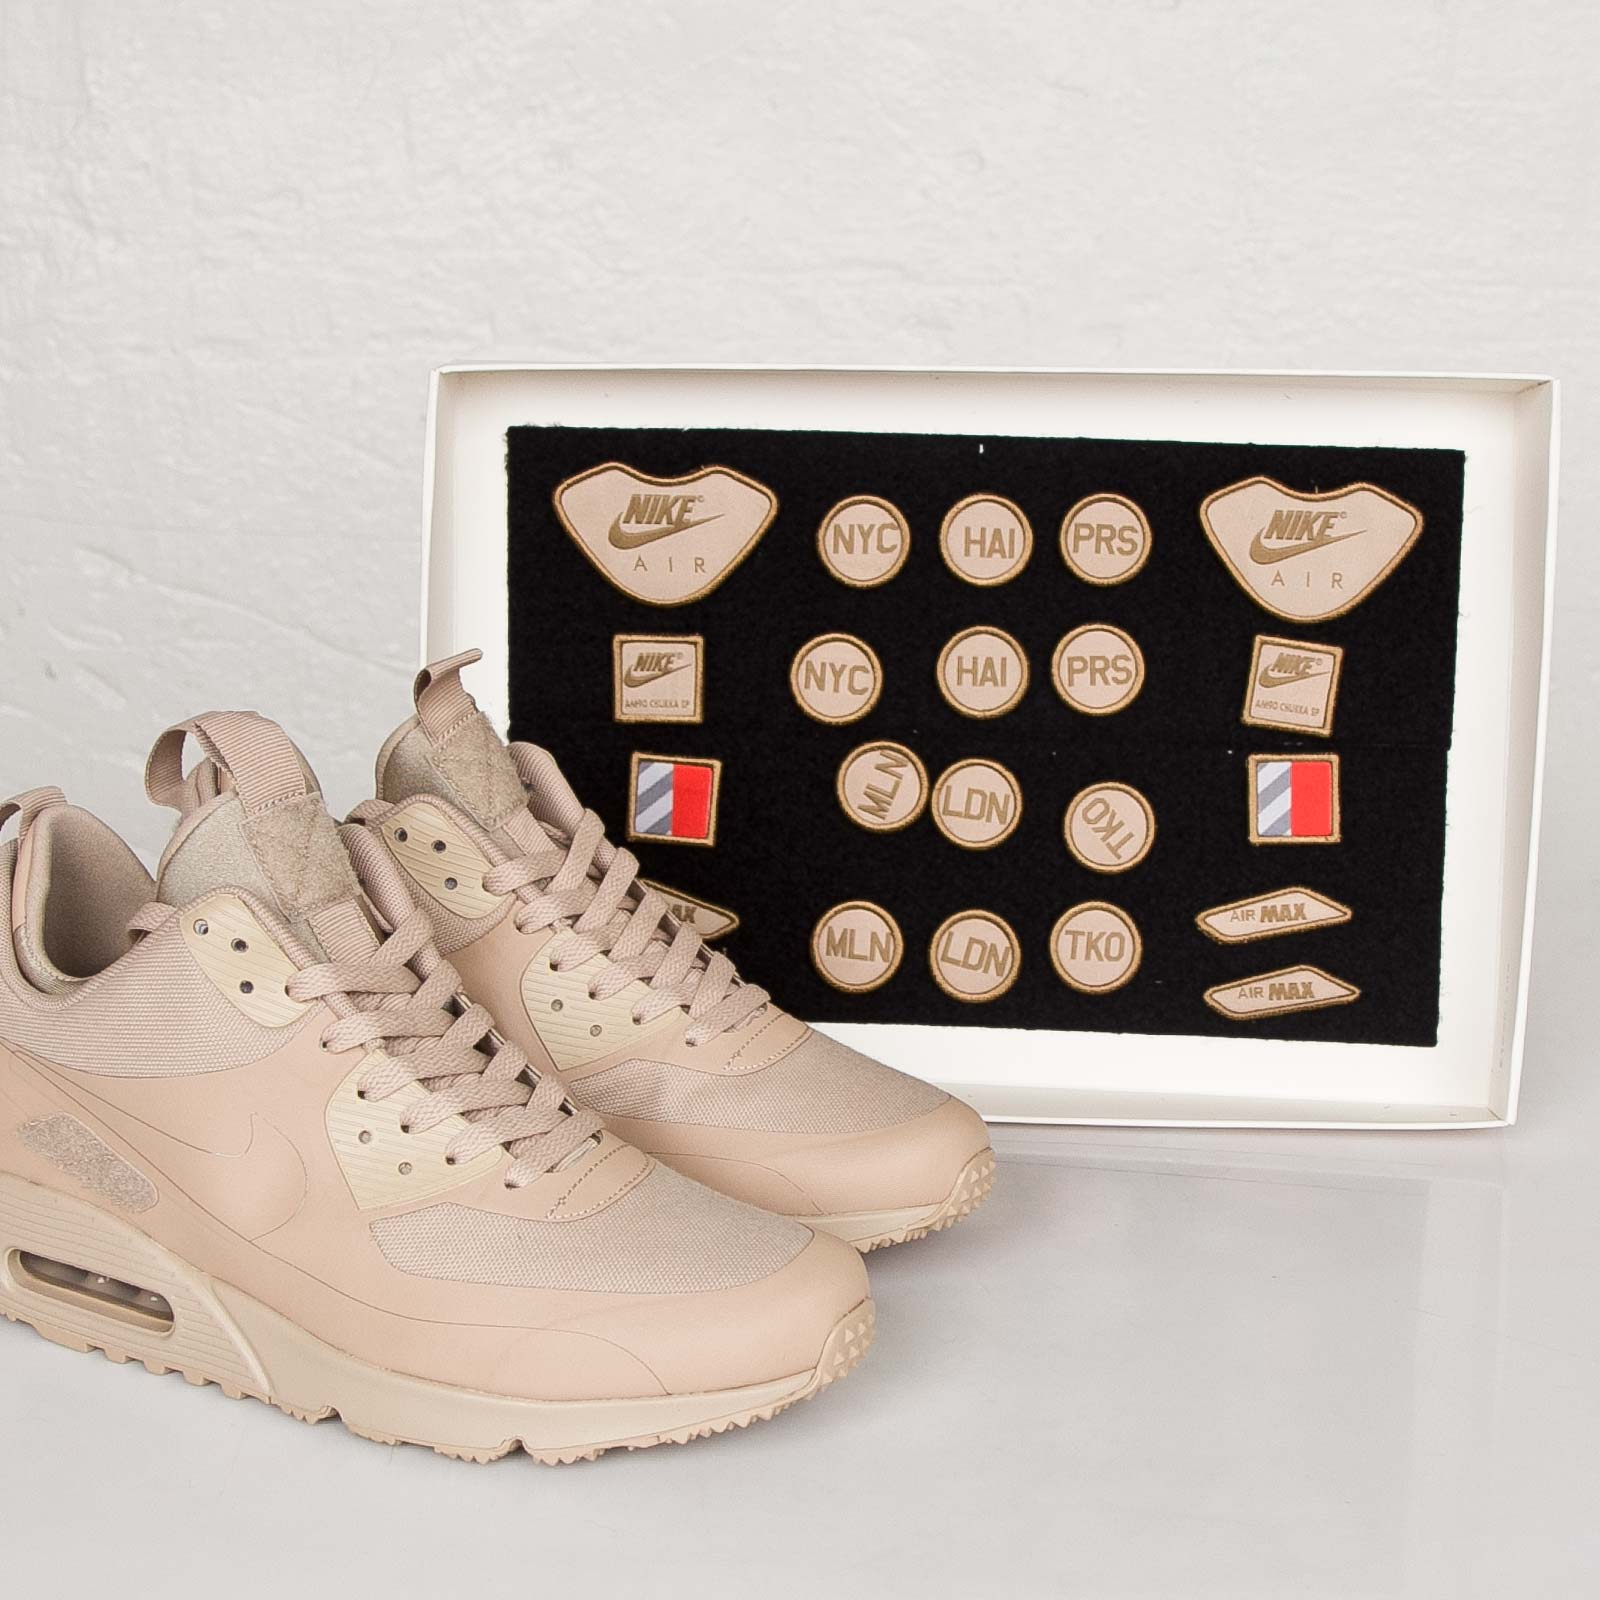 quality design a9196 55d06 ... Nike Air Max 90 Sneakerboot SP